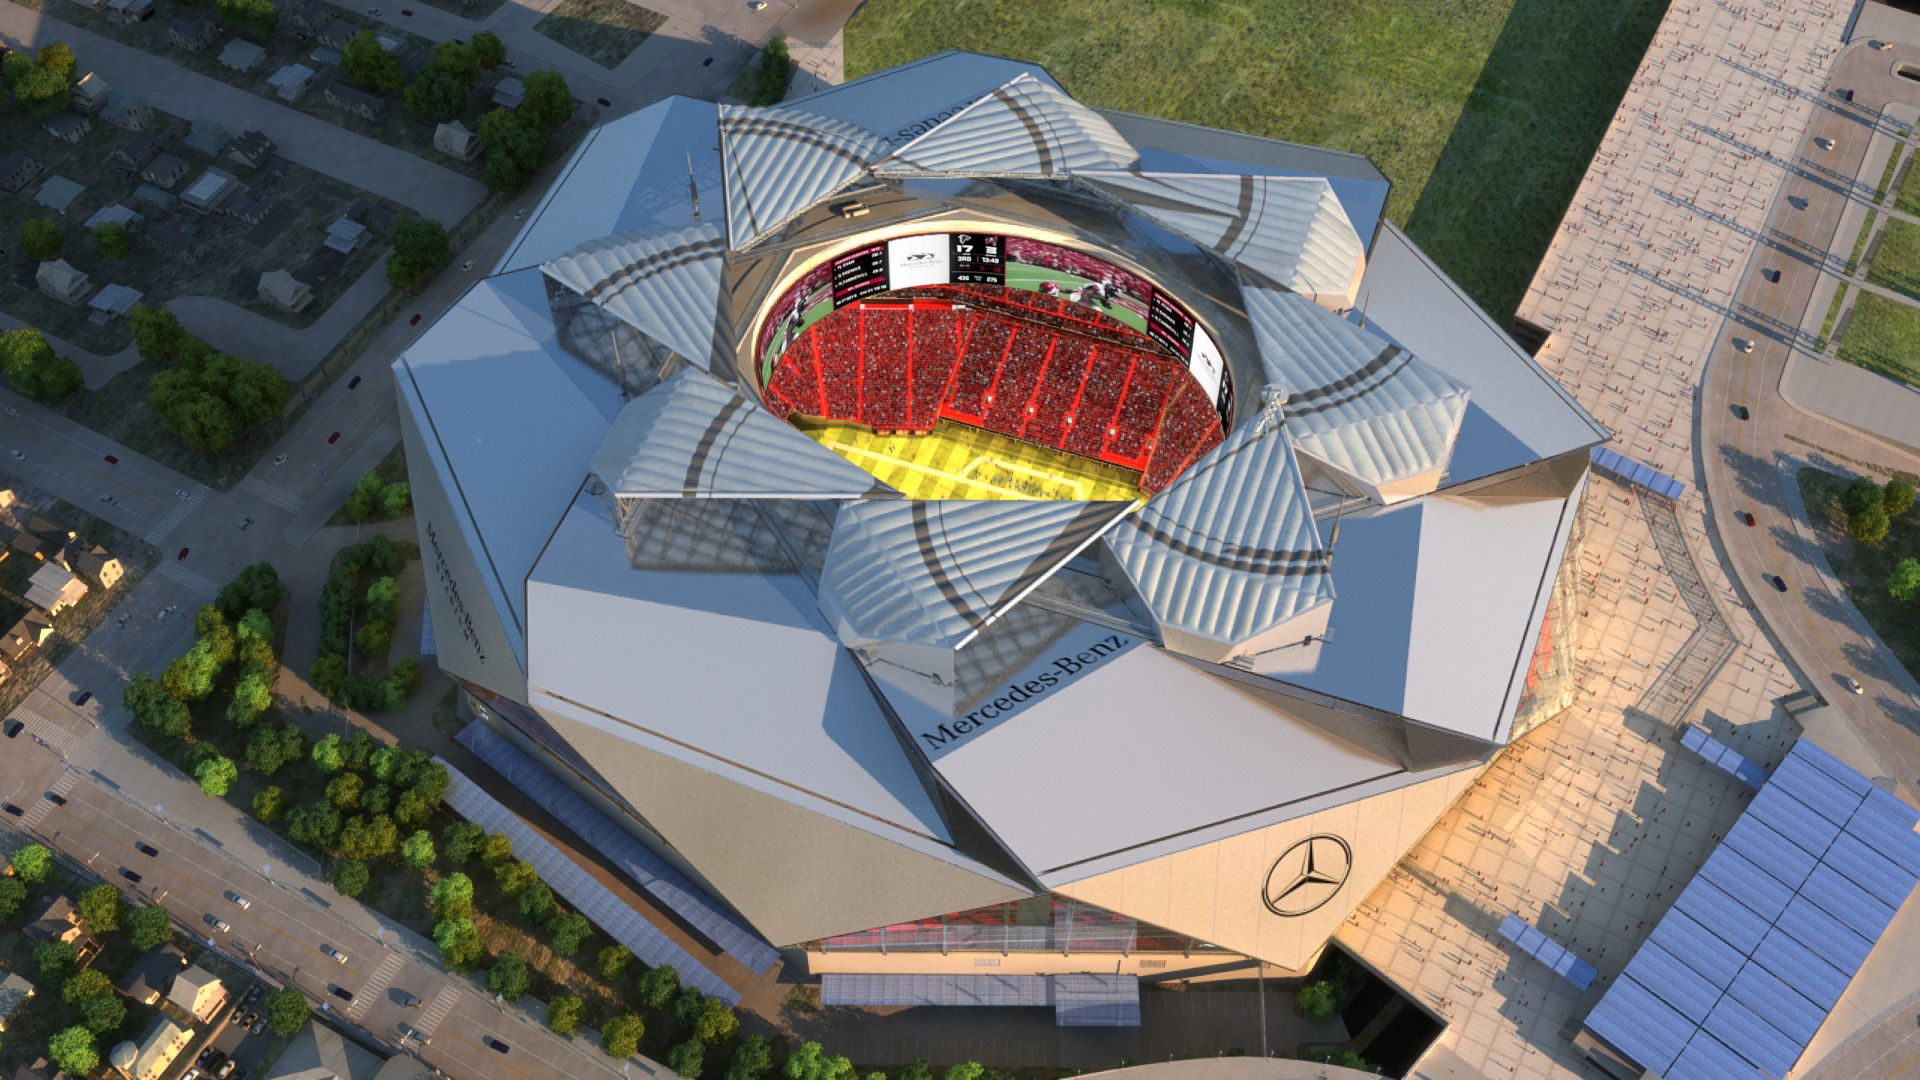 Pin By Al Rod On Design Atlanta Falcons Stadium Stadium Architecture Nfl Stadiums